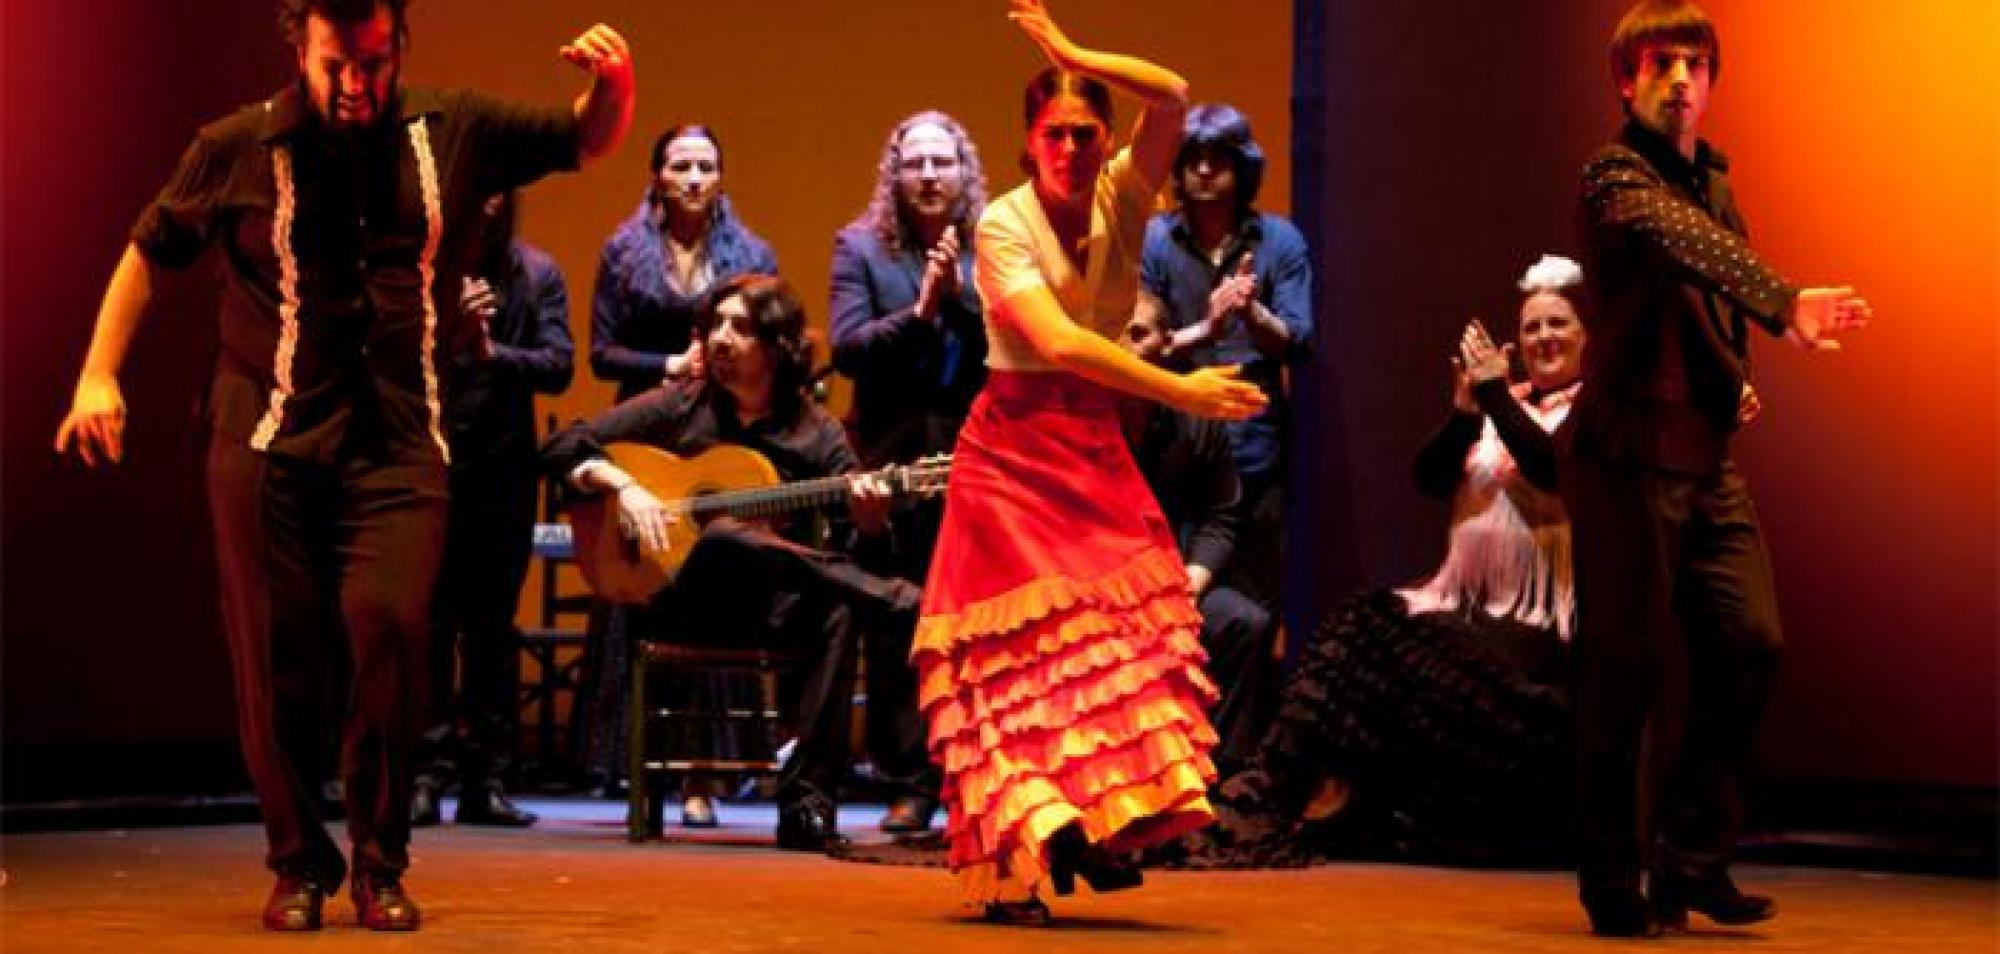 Spanish Dancers Hope to Perform a Unique Flamenco Show in Cuba